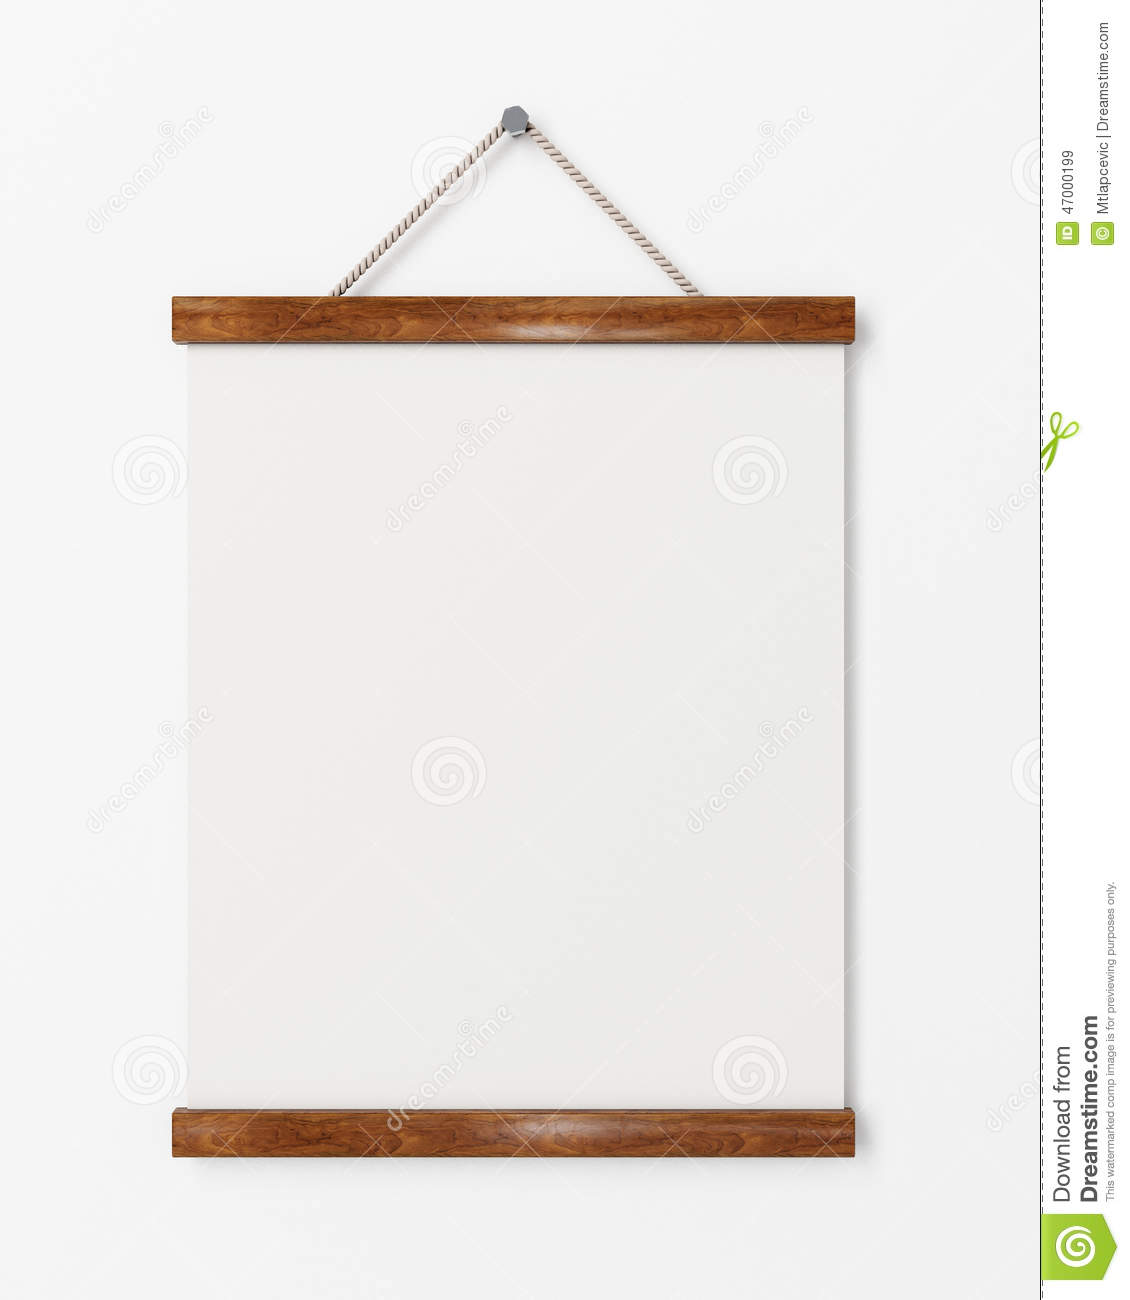 Superior Mock Up Blank Poster With Wooden Frame Hanging On The White Wall, Background